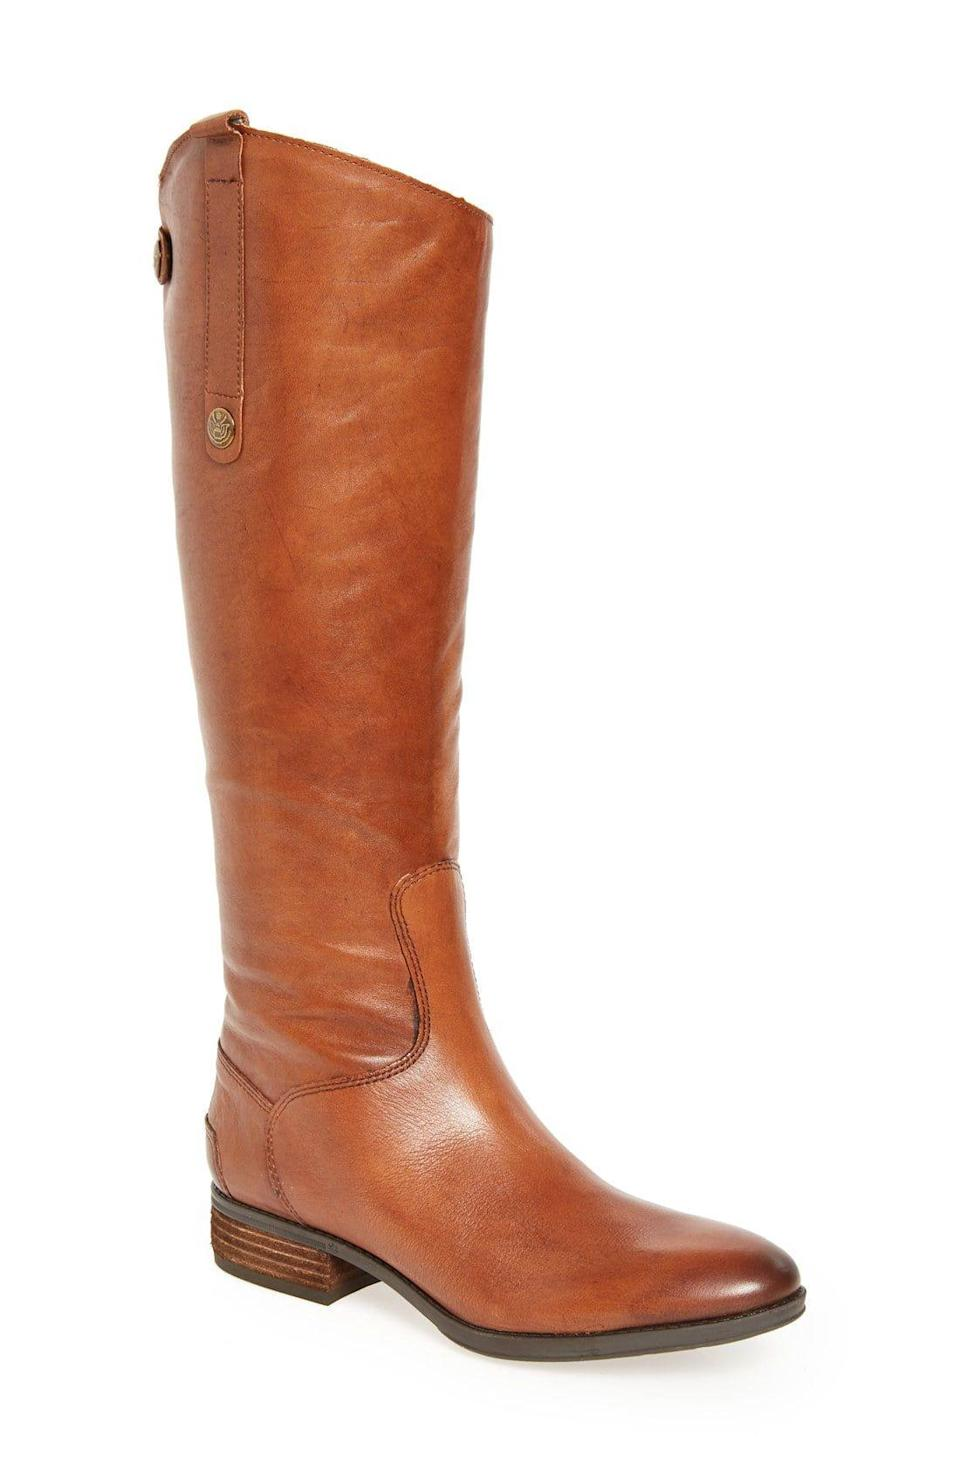 """<p><strong>Sam Edelman</strong></p><p><strong>$44.84</strong></p><p><a href=""""https://www.amazon.com/Sam-Edelman-Penny-Whiskey-Leather/dp/B00G1INUPW/?tag=syn-yahoo-20&ascsubtag=%5Bartid%7C10067.g.28225508%5Bsrc%7Cyahoo-us"""" rel=""""nofollow noopener"""" target=""""_blank"""" data-ylk=""""slk:Shop Now"""" class=""""link rapid-noclick-resp"""">Shop Now</a></p><p>Take a page from <a href=""""https://www.townandcountrymag.com/style/fashion-trends/g15925659/kate-middleton-favorite-shoes/"""" rel=""""nofollow noopener"""" target=""""_blank"""" data-ylk=""""slk:Kate Middleton's book"""" class=""""link rapid-noclick-resp"""">Kate Middleton's book</a> and accent your fall style with a cute pair of riding boots. </p>"""